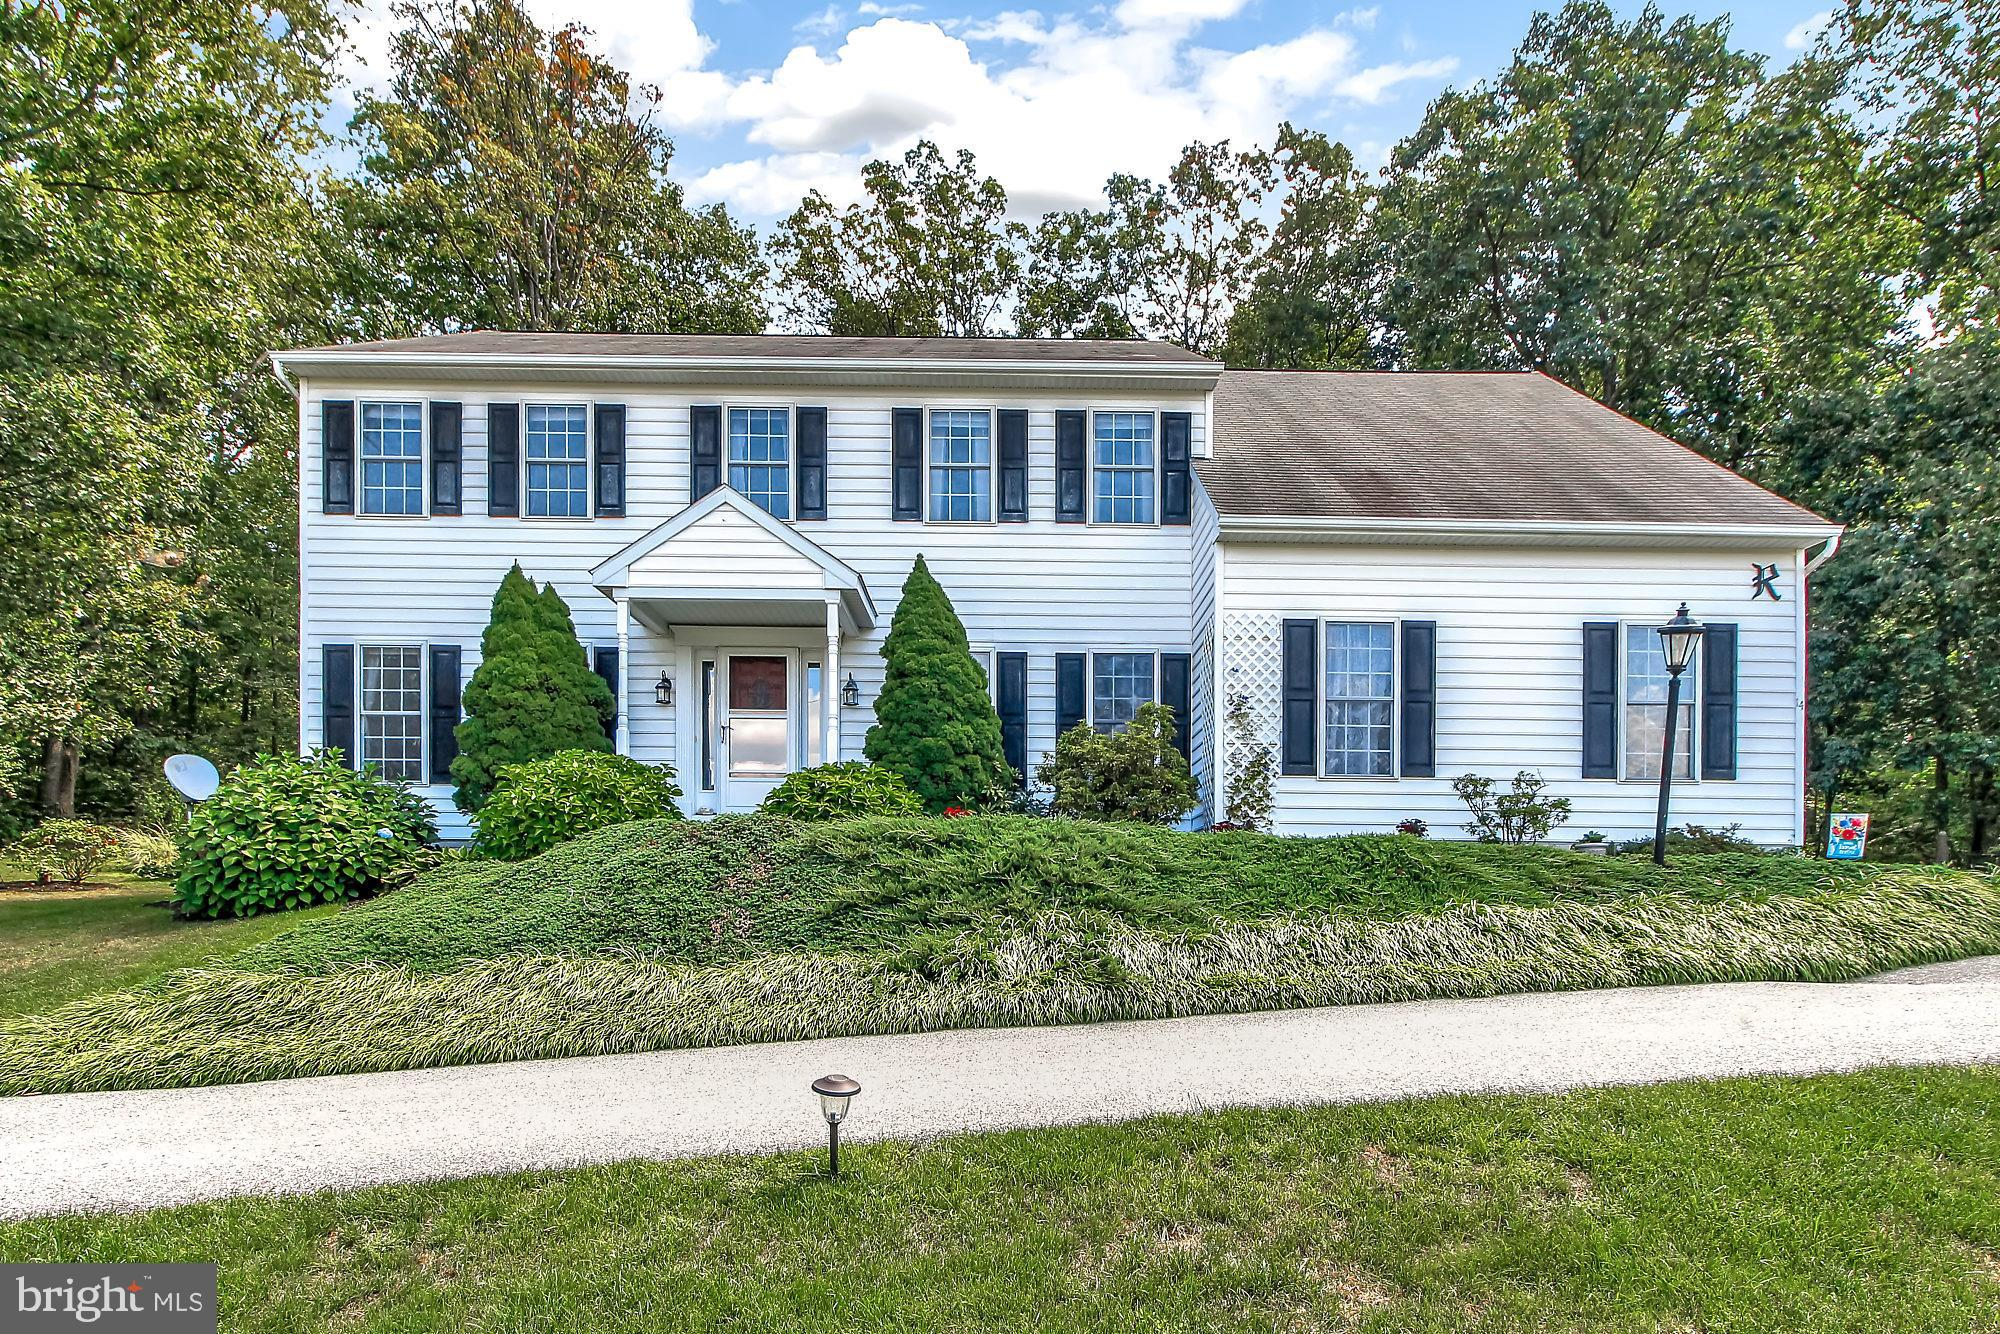 14 DEEP POWDER TRAIL, FAIRFIELD, PA 17320